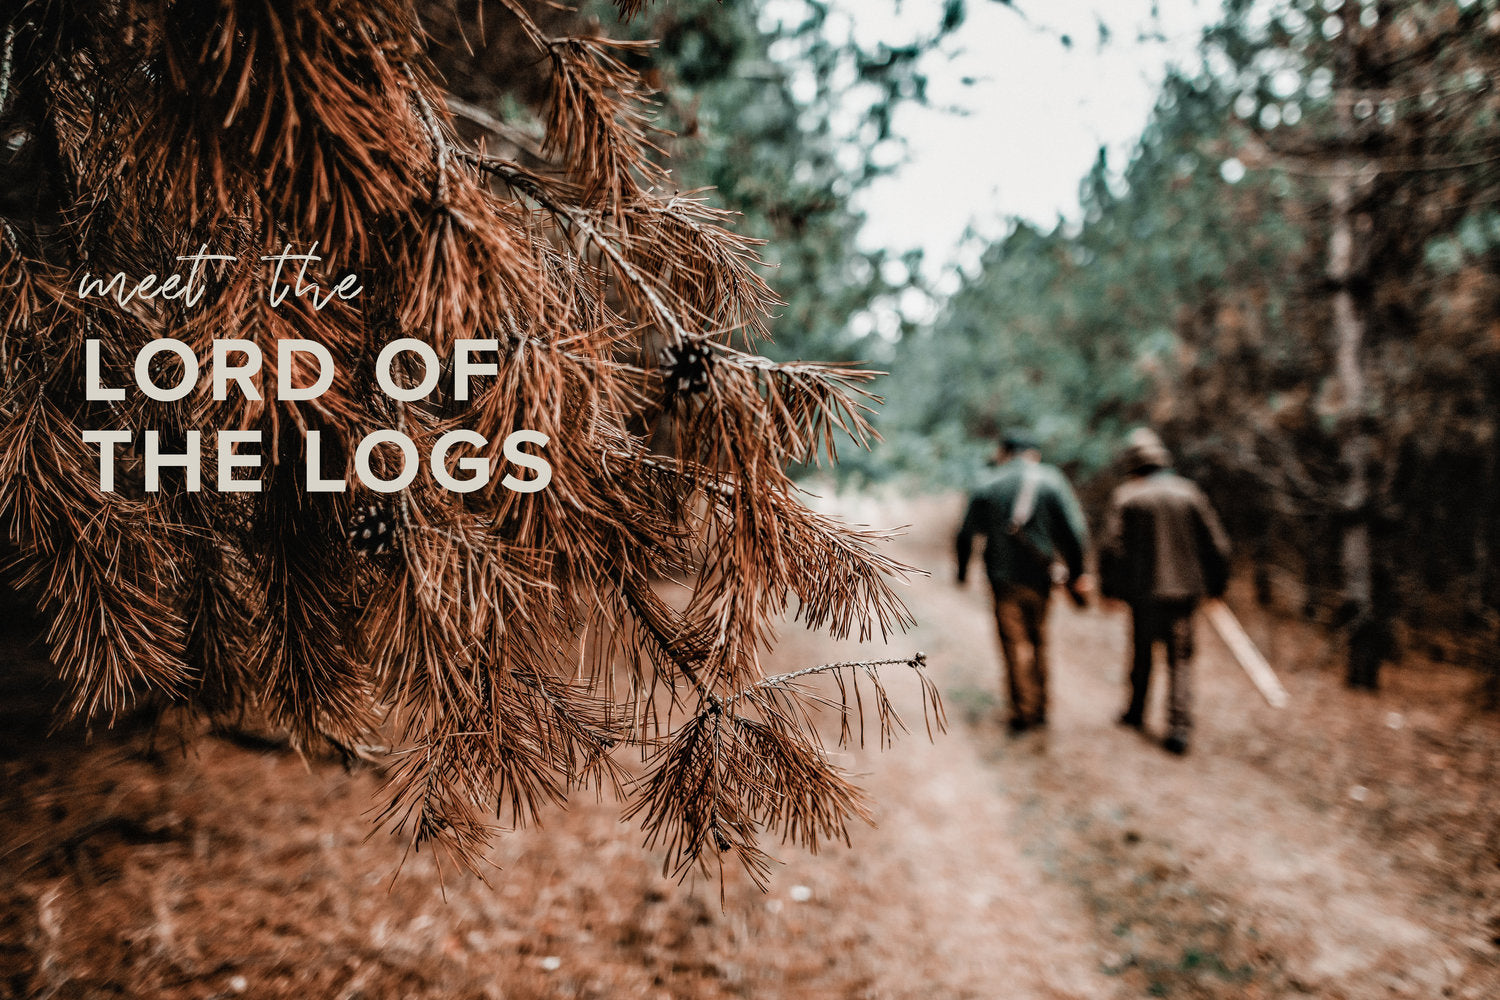 Don Sadler: Lord of the Logs